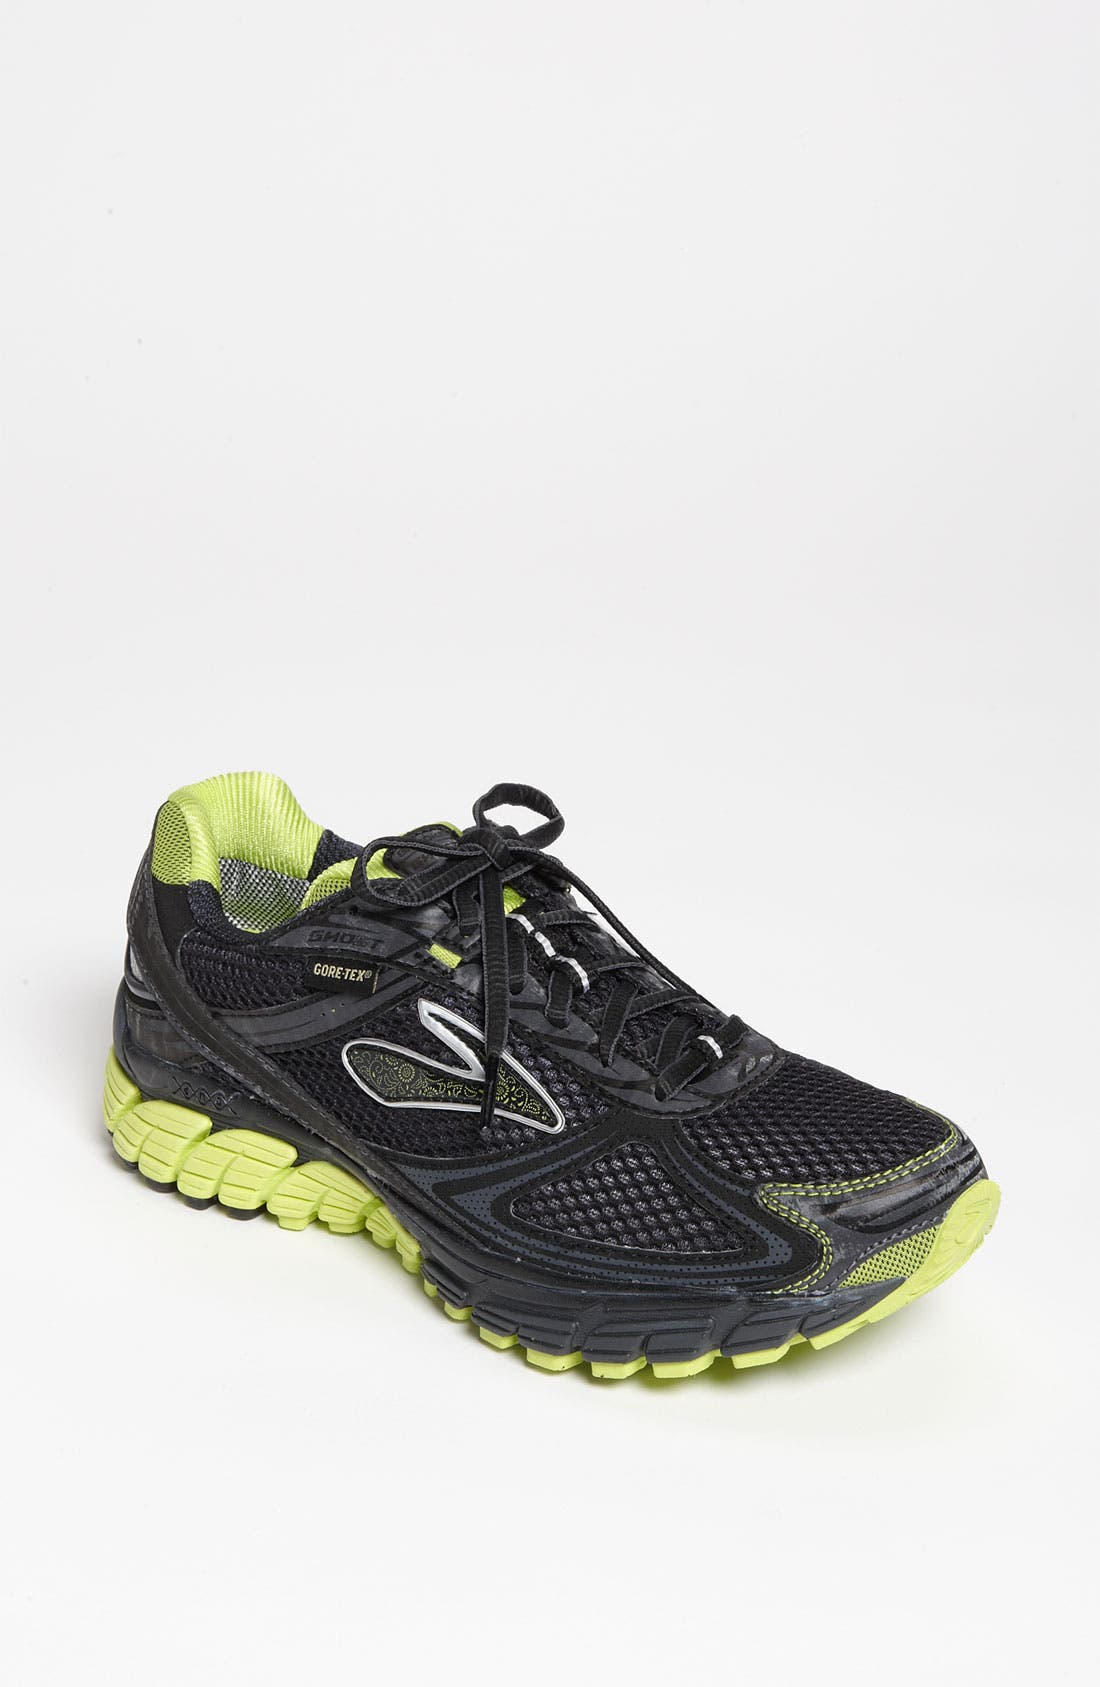 Main Image - Brooks 'Ghost Gore-Tex®' Running Shoe (Women)(Retail Price: $129.95)